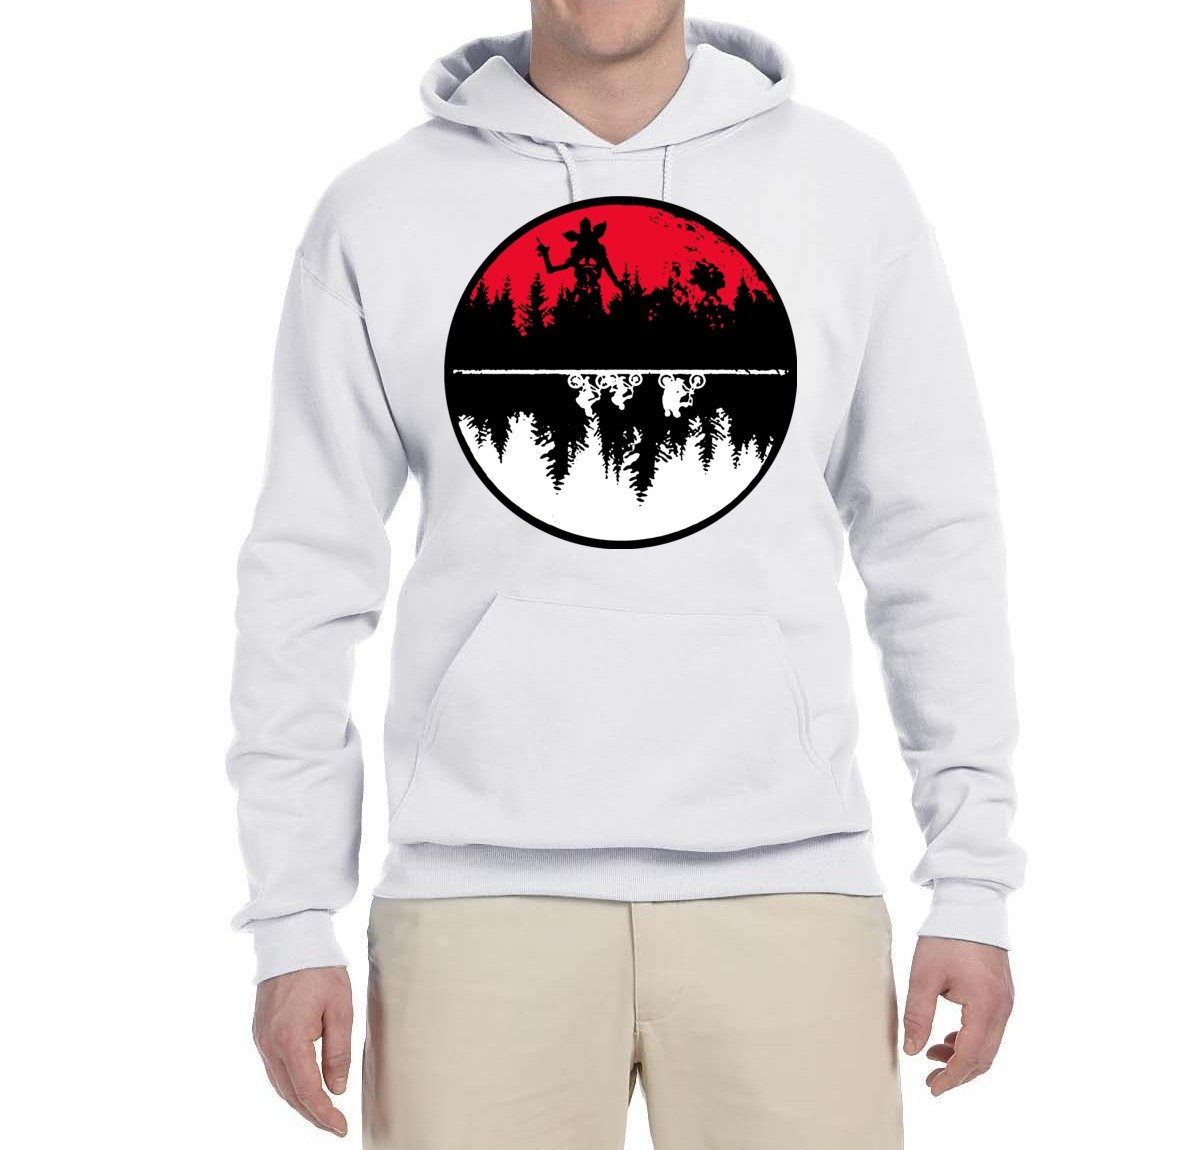 Upside Down Demogorgon Silhouette S Pop Culture Hooded Graphic 4715 Shirts